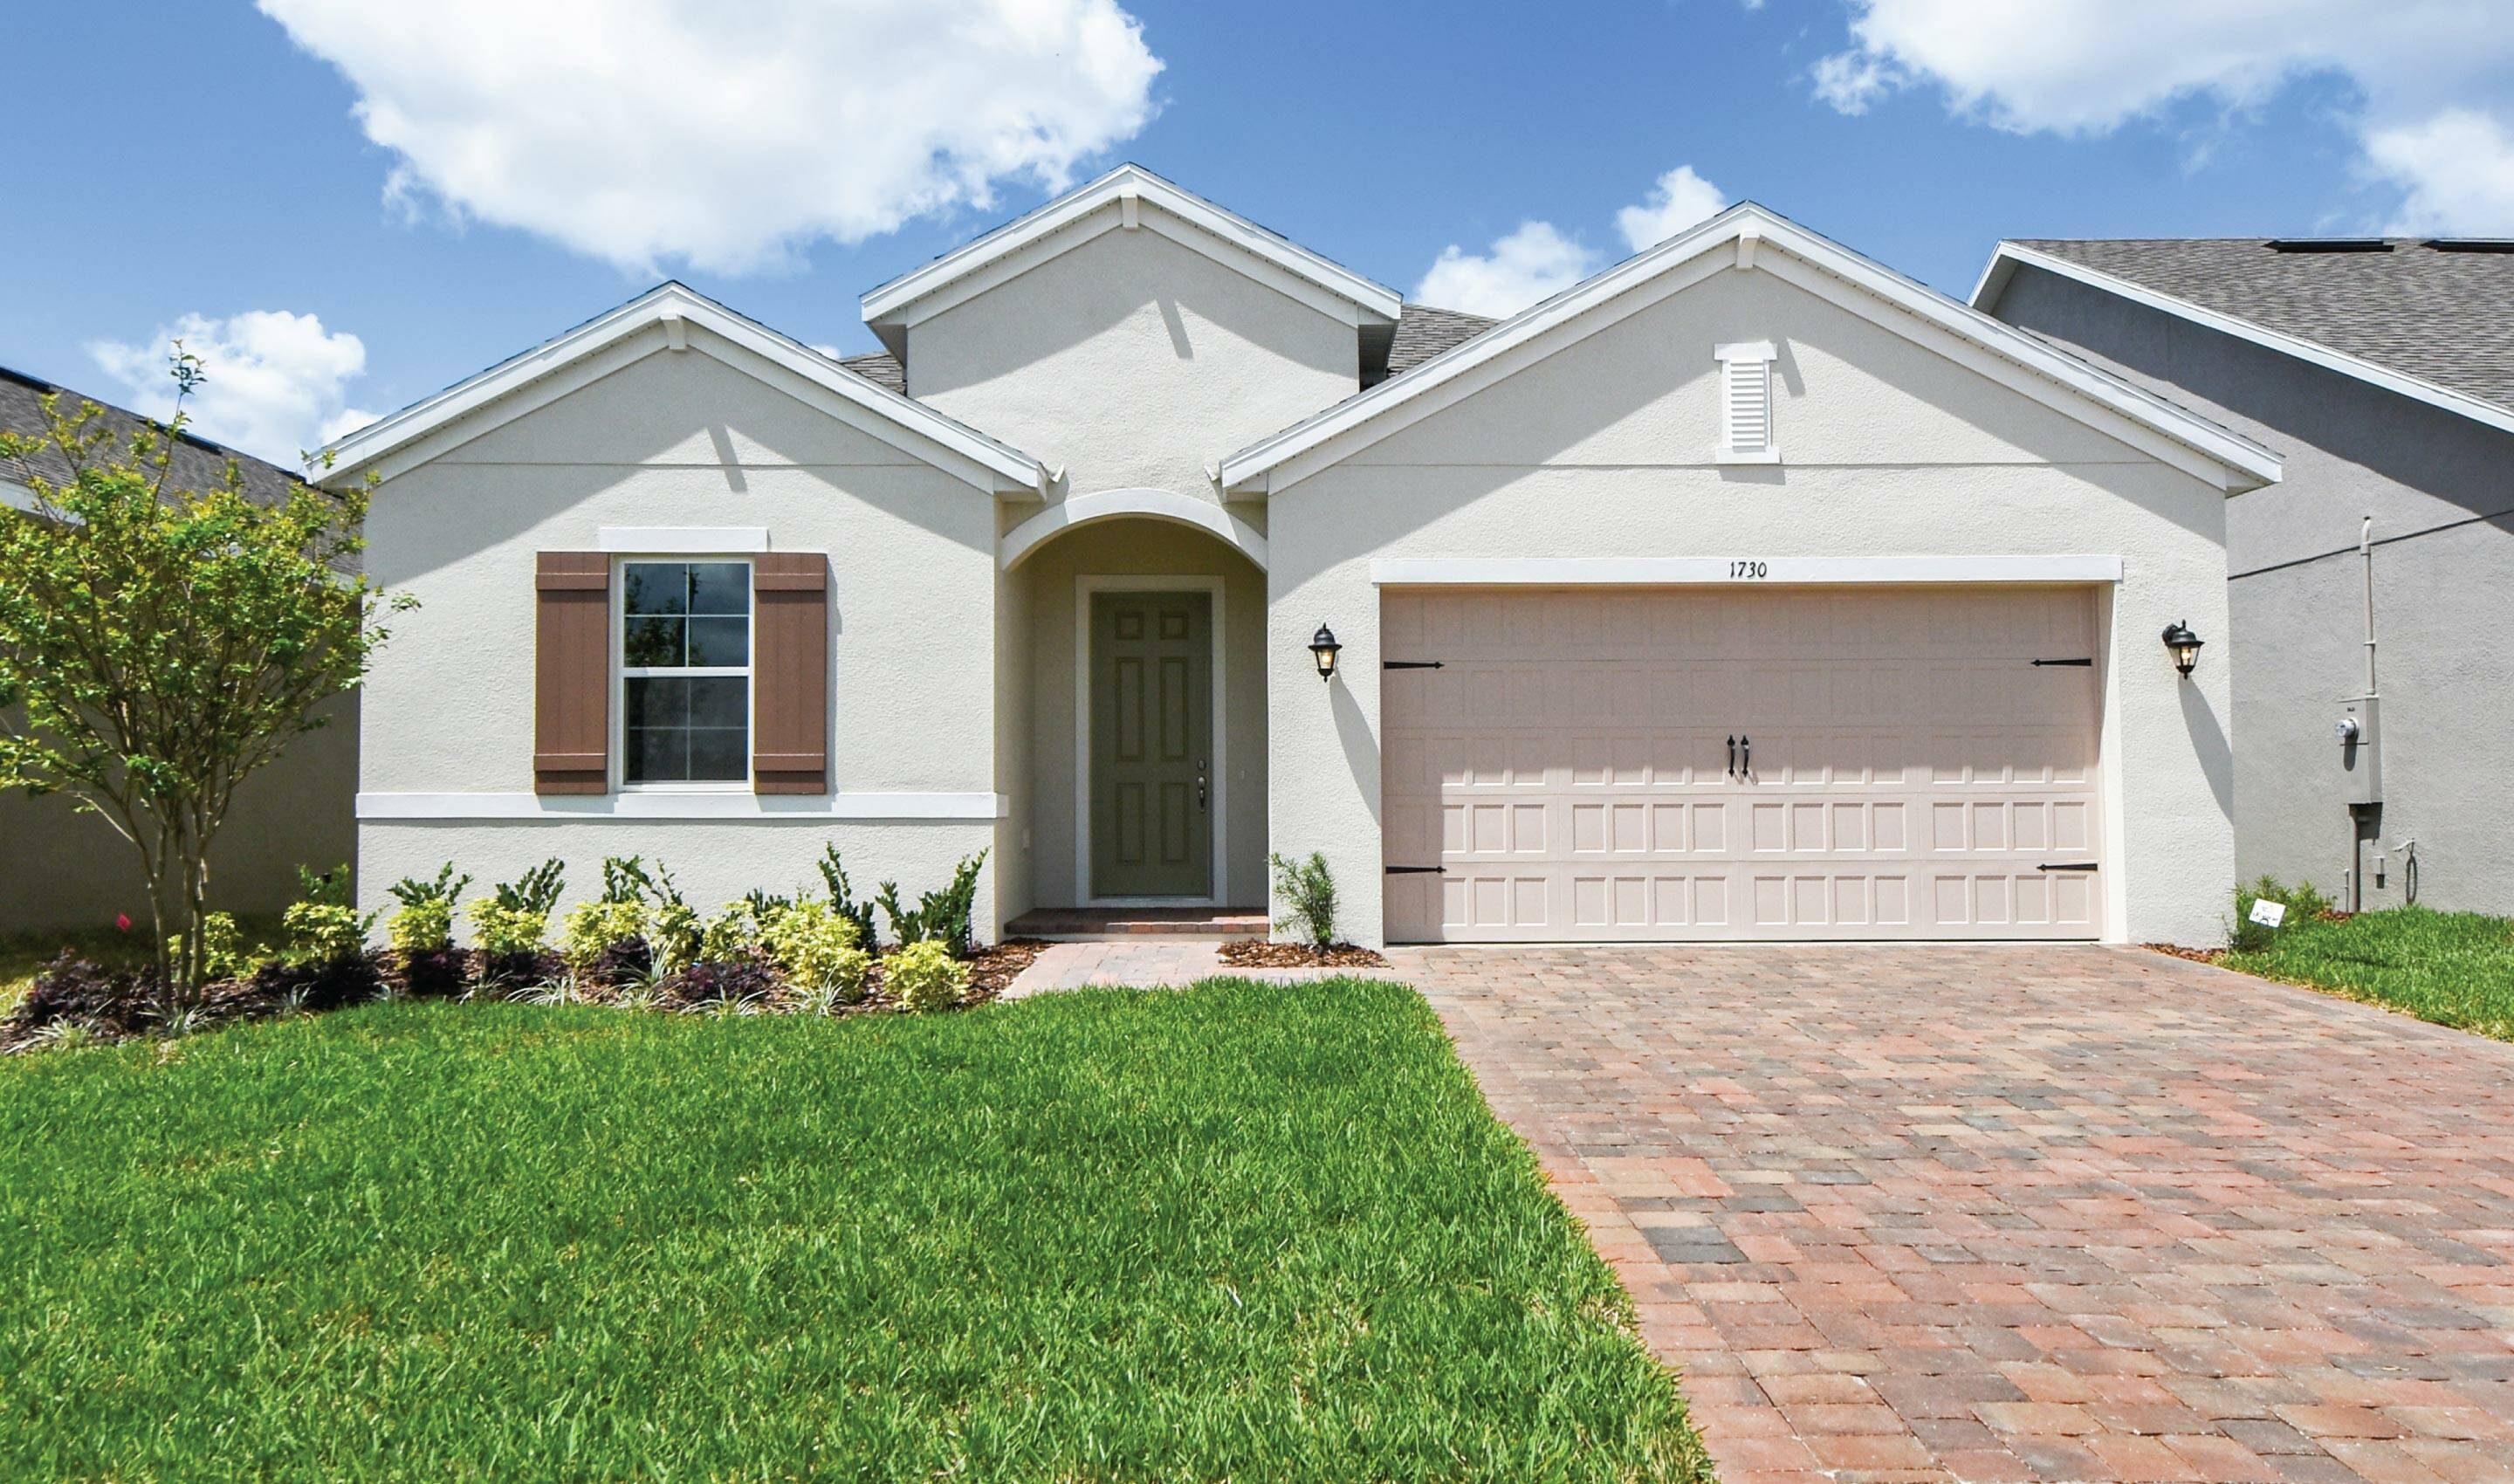 sherrington-quick-move-in-new-home-orlando-florida